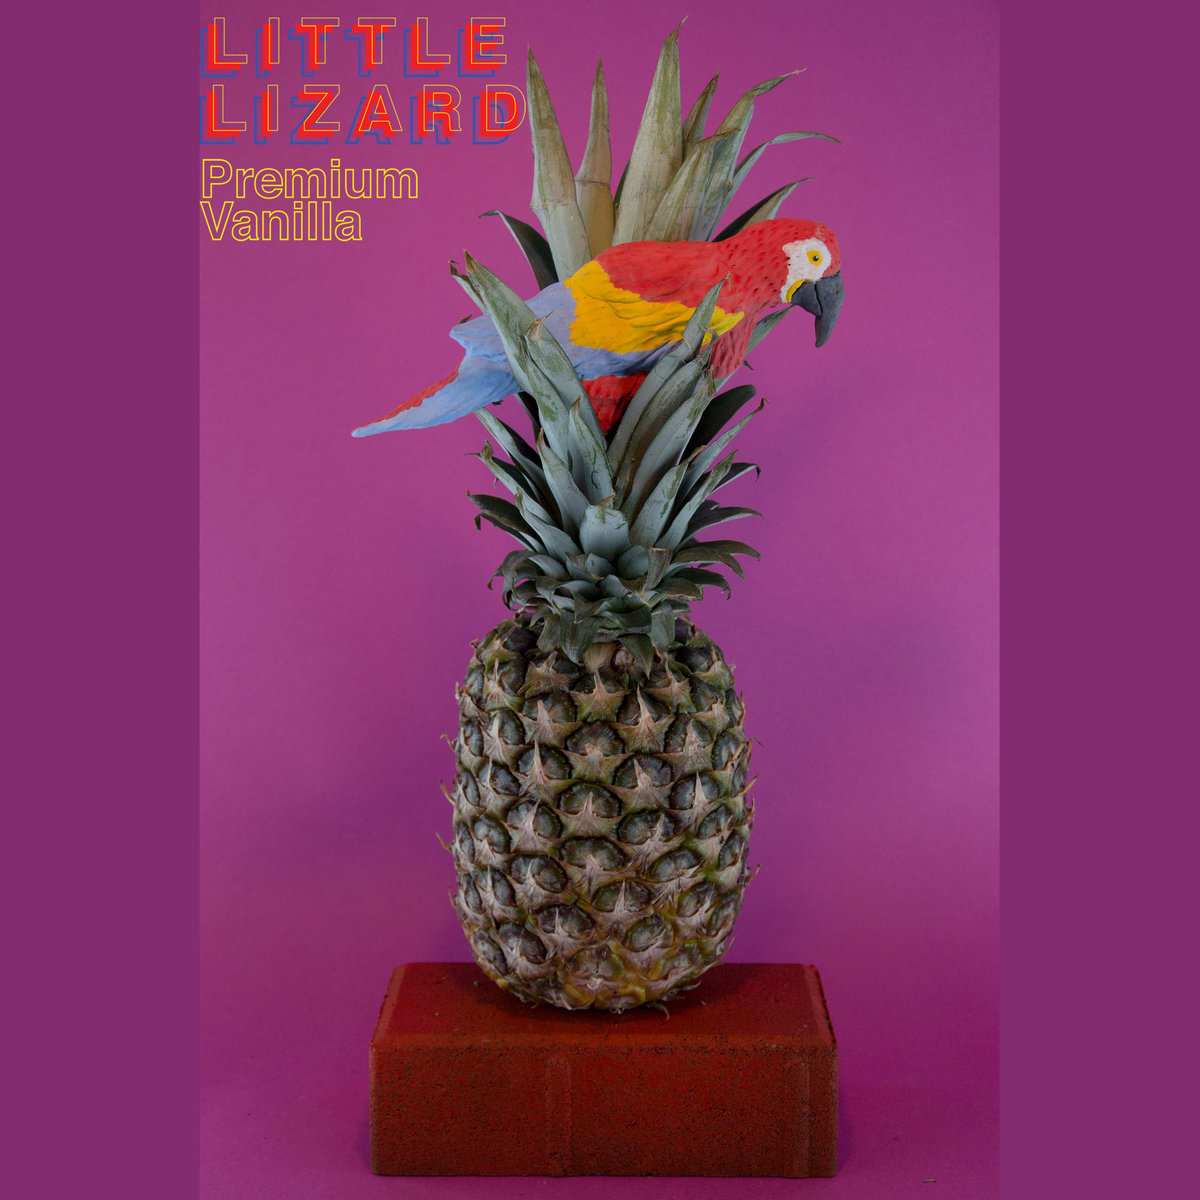 Introducing: The Tropical Funk Instrumentals of Little Lizard (LP Release Show Sunday!)